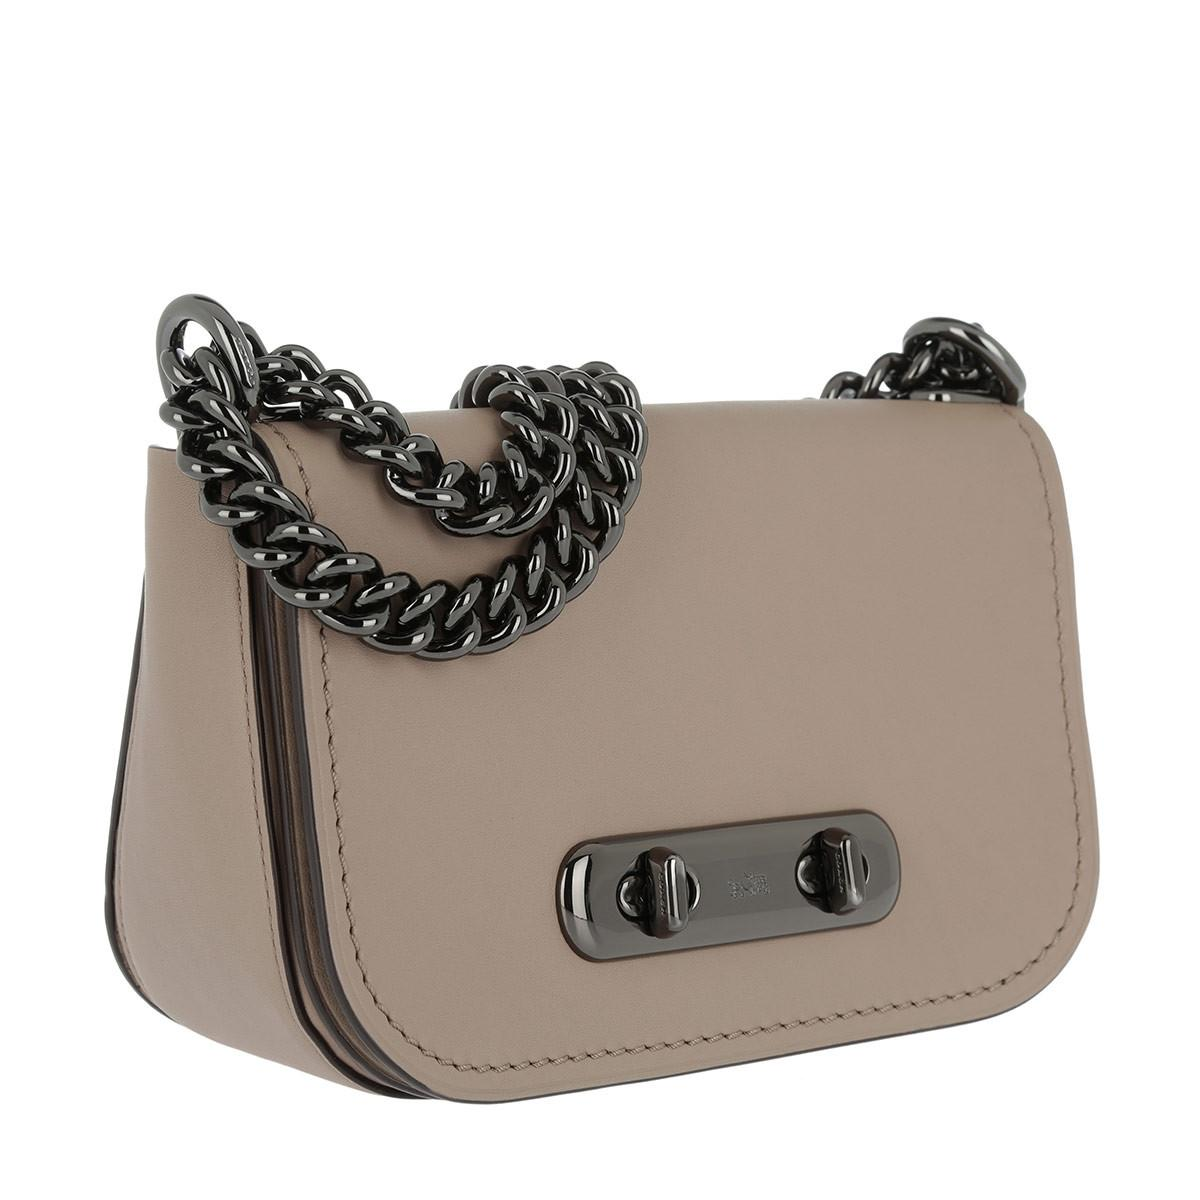 Coach Swagger 20 cross body bag Outlet With Paypal Cheap New With Mastercard Sale Deals Clearance From China tBaWhqY